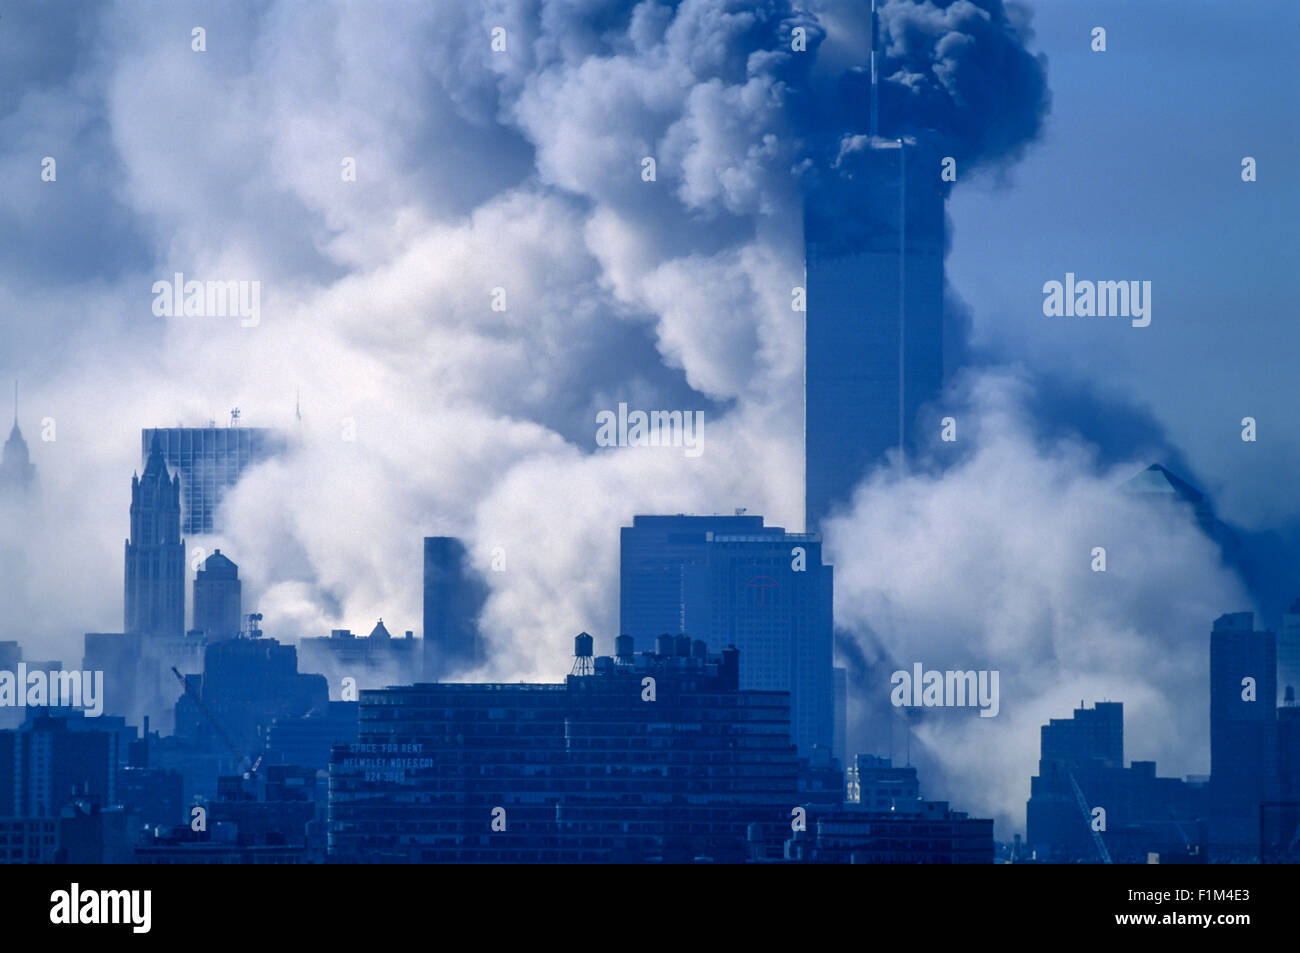 HISTORICAL SEPTEMBER 11 2001 WORLD TRADE CENTER ATTACK NEW YORK CITY USA SOUTH TOWER COLLAPSE 9.59 AM - Stock Image